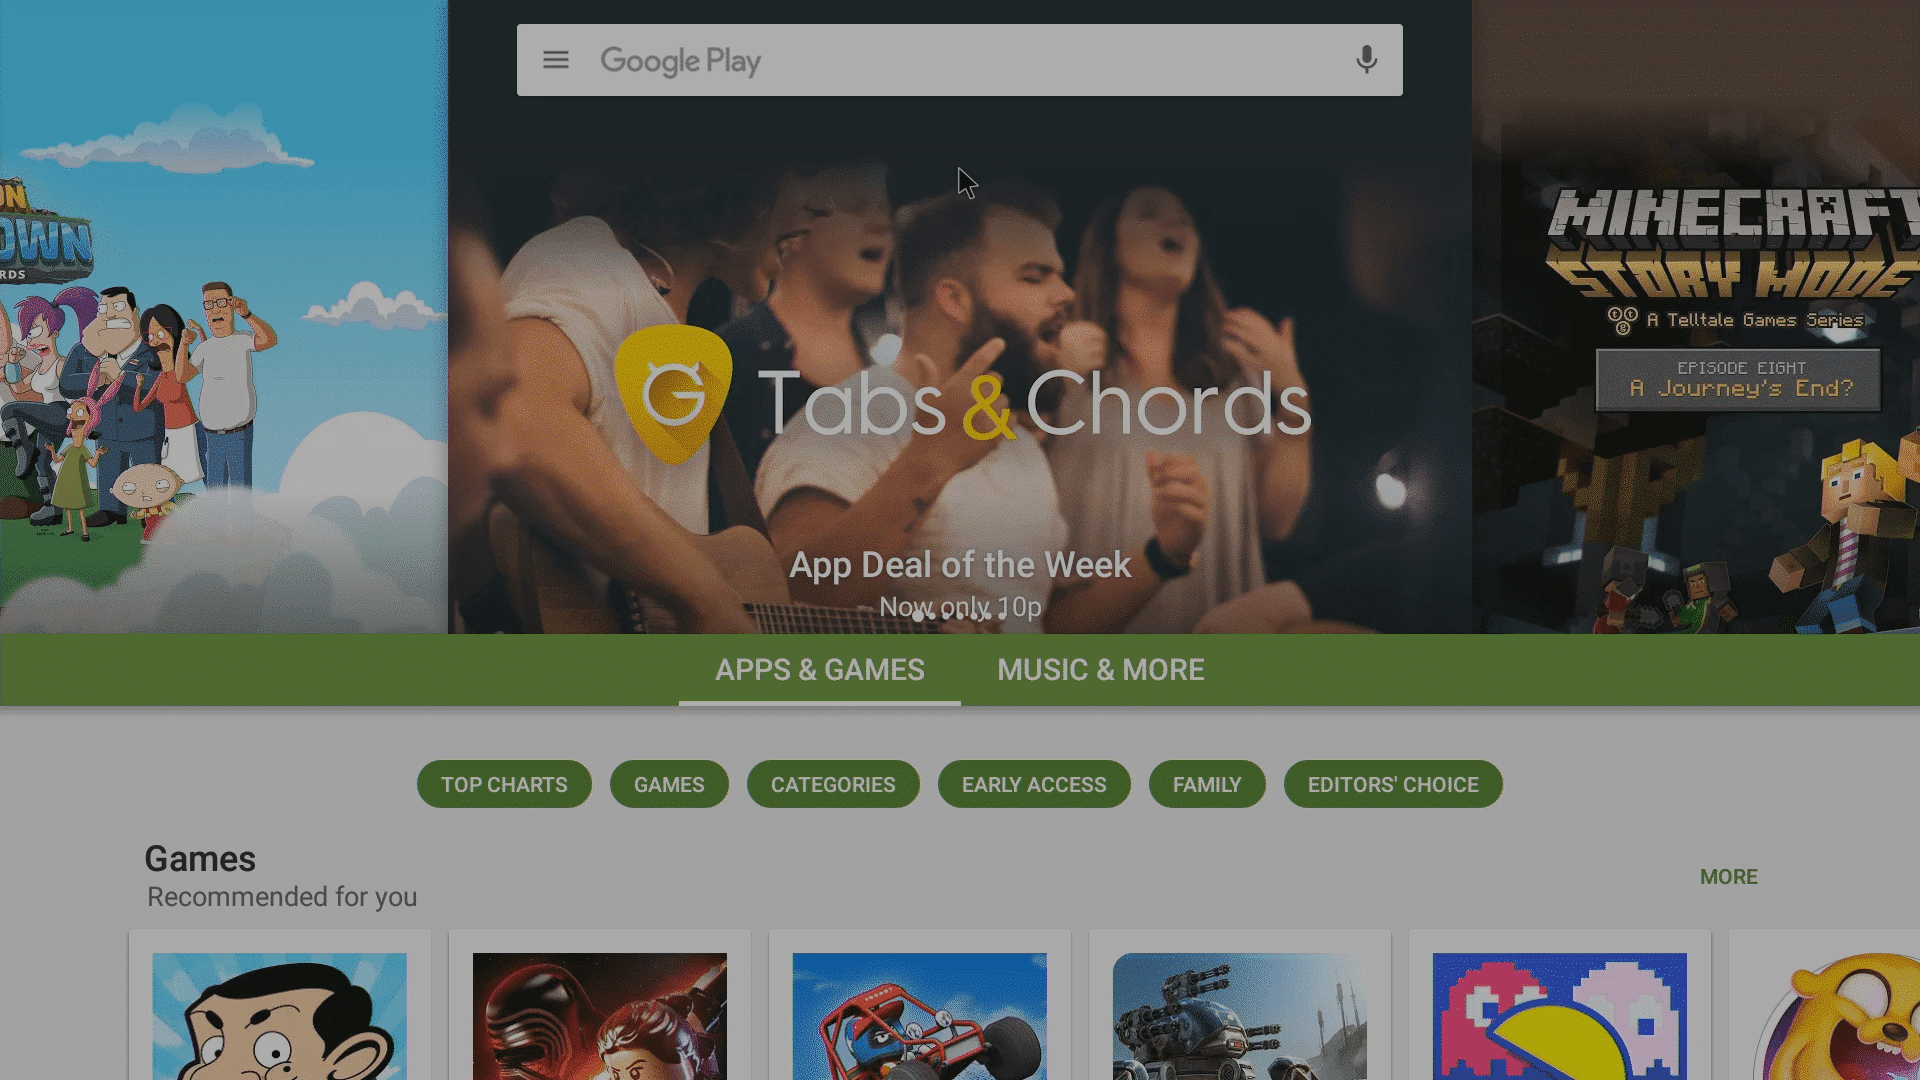 Google's Play Store Home Screen